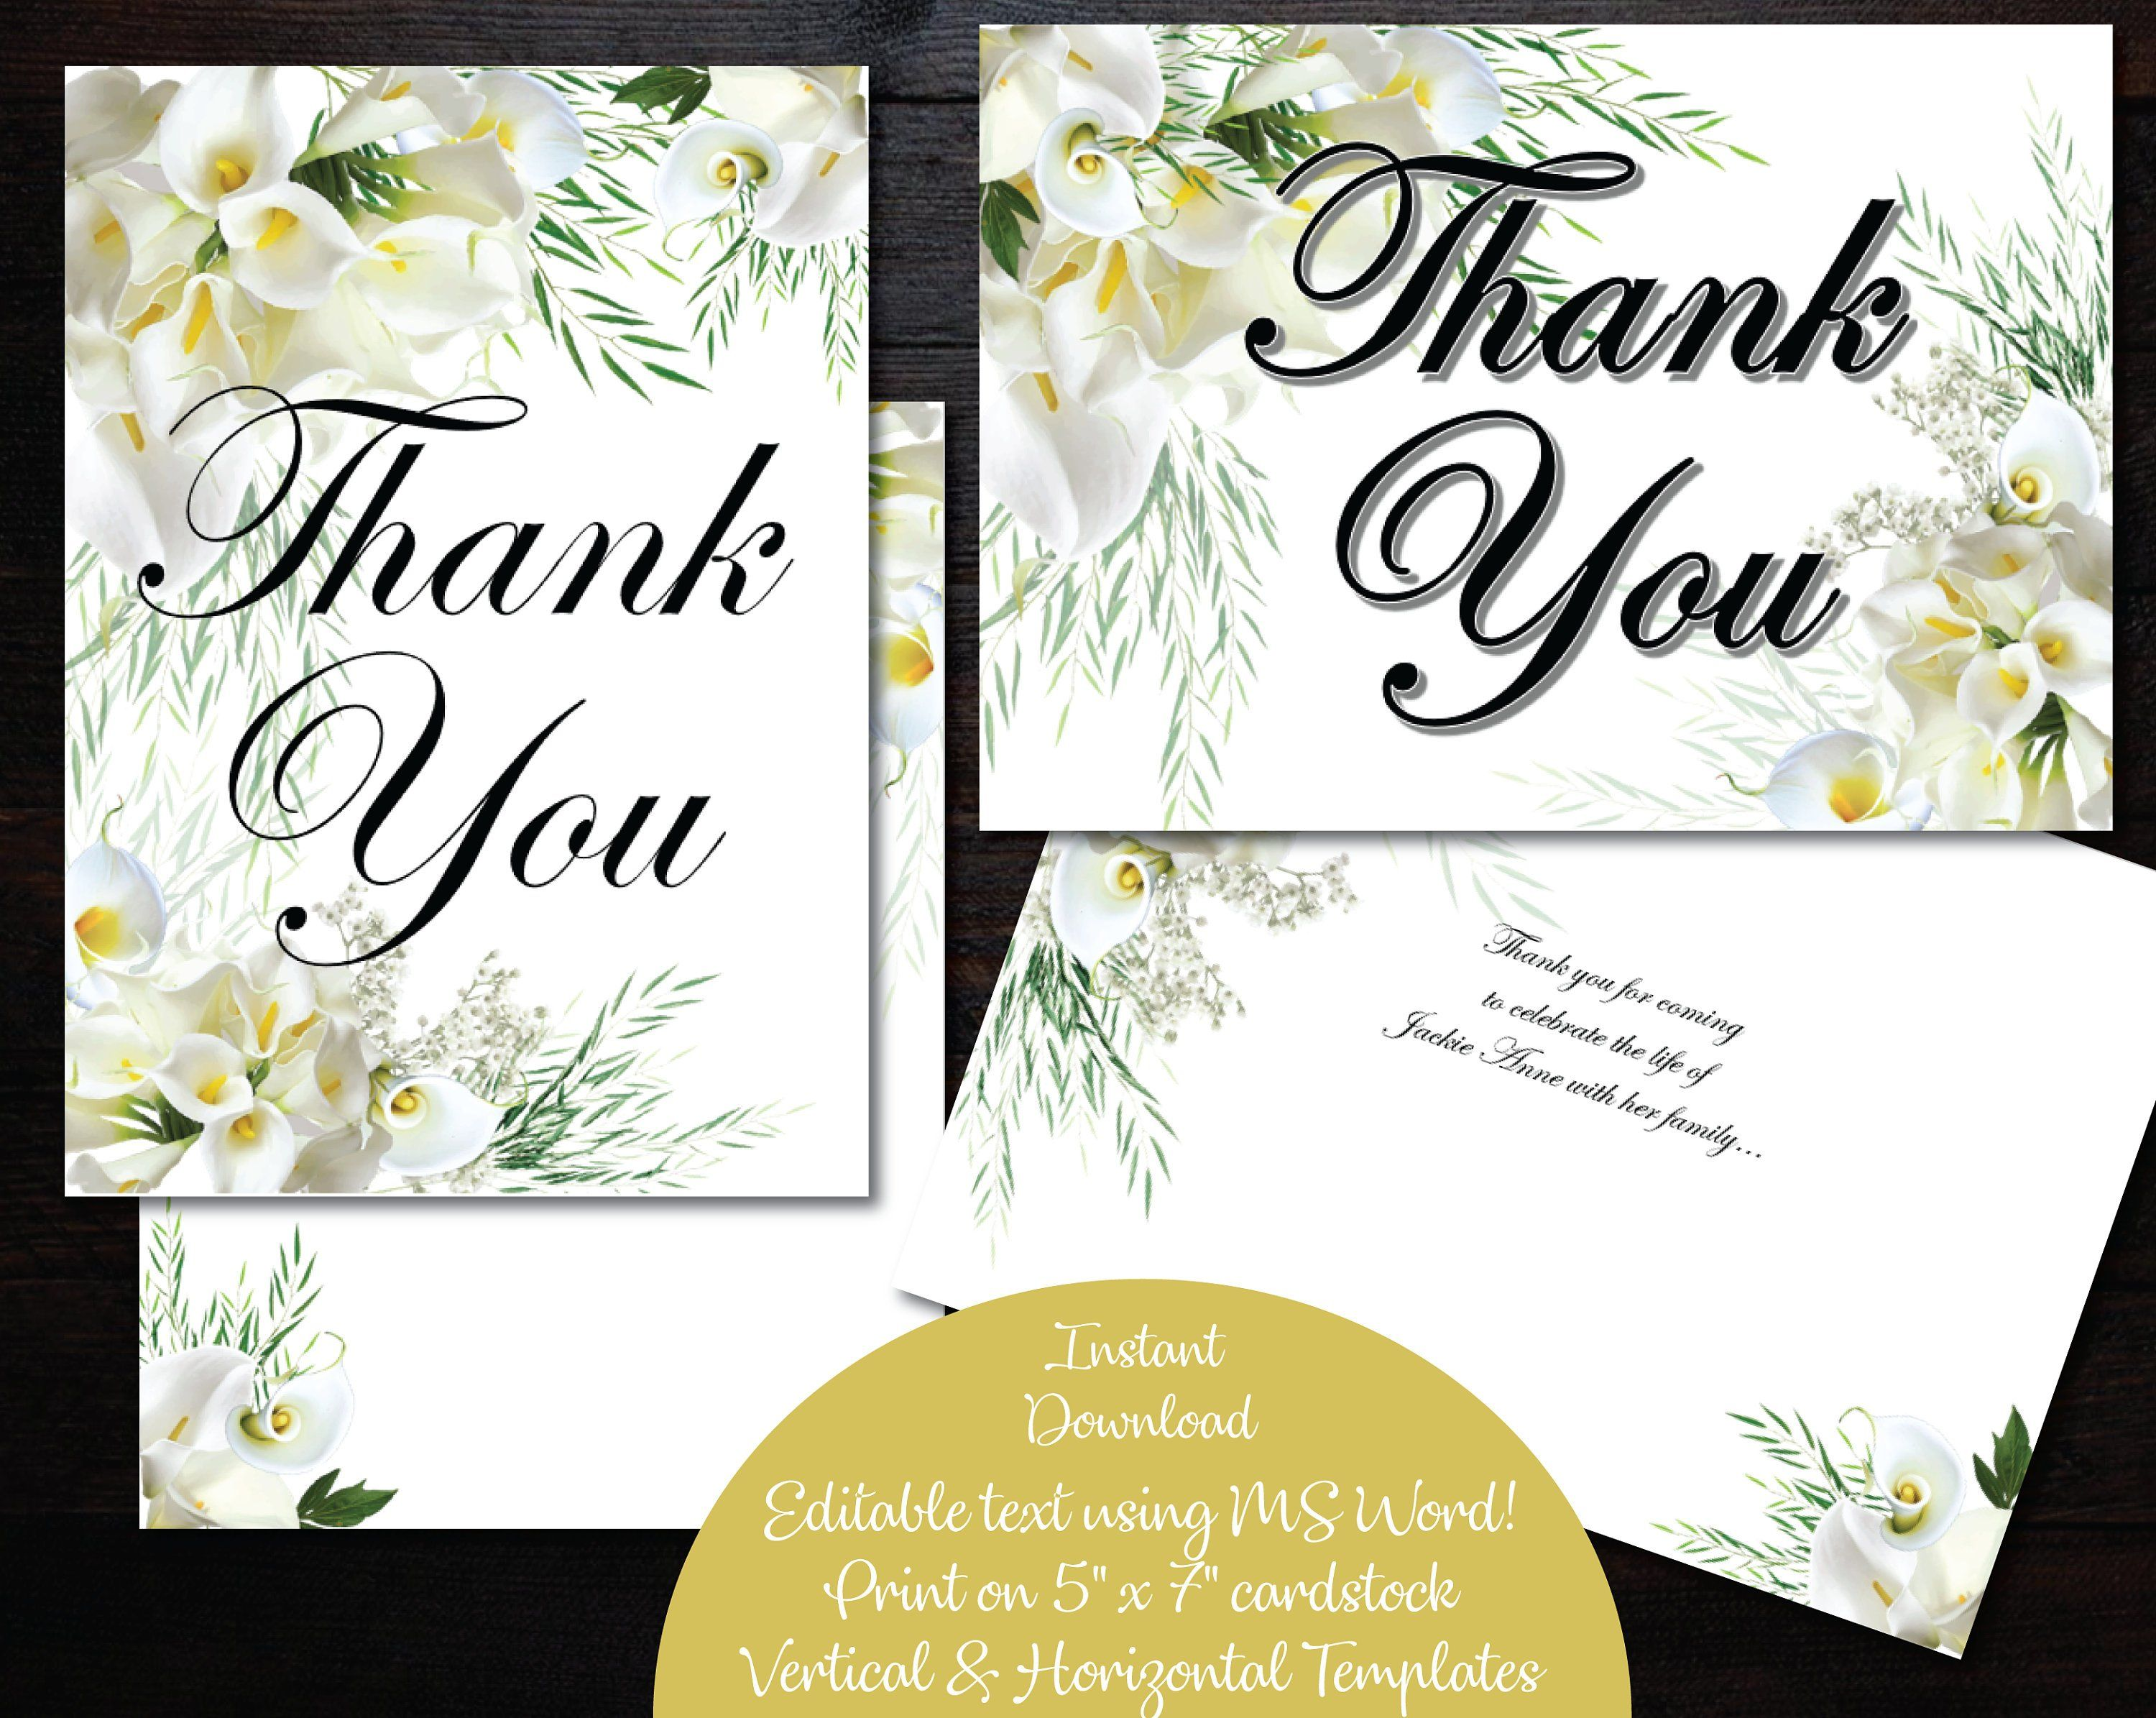 Thank You Card Printable Card Digital File Editable Text Calla Lily Https Etsy Me 2qsjey0 Papergoods Officiant Card Cards Personalized Wedding Gifts